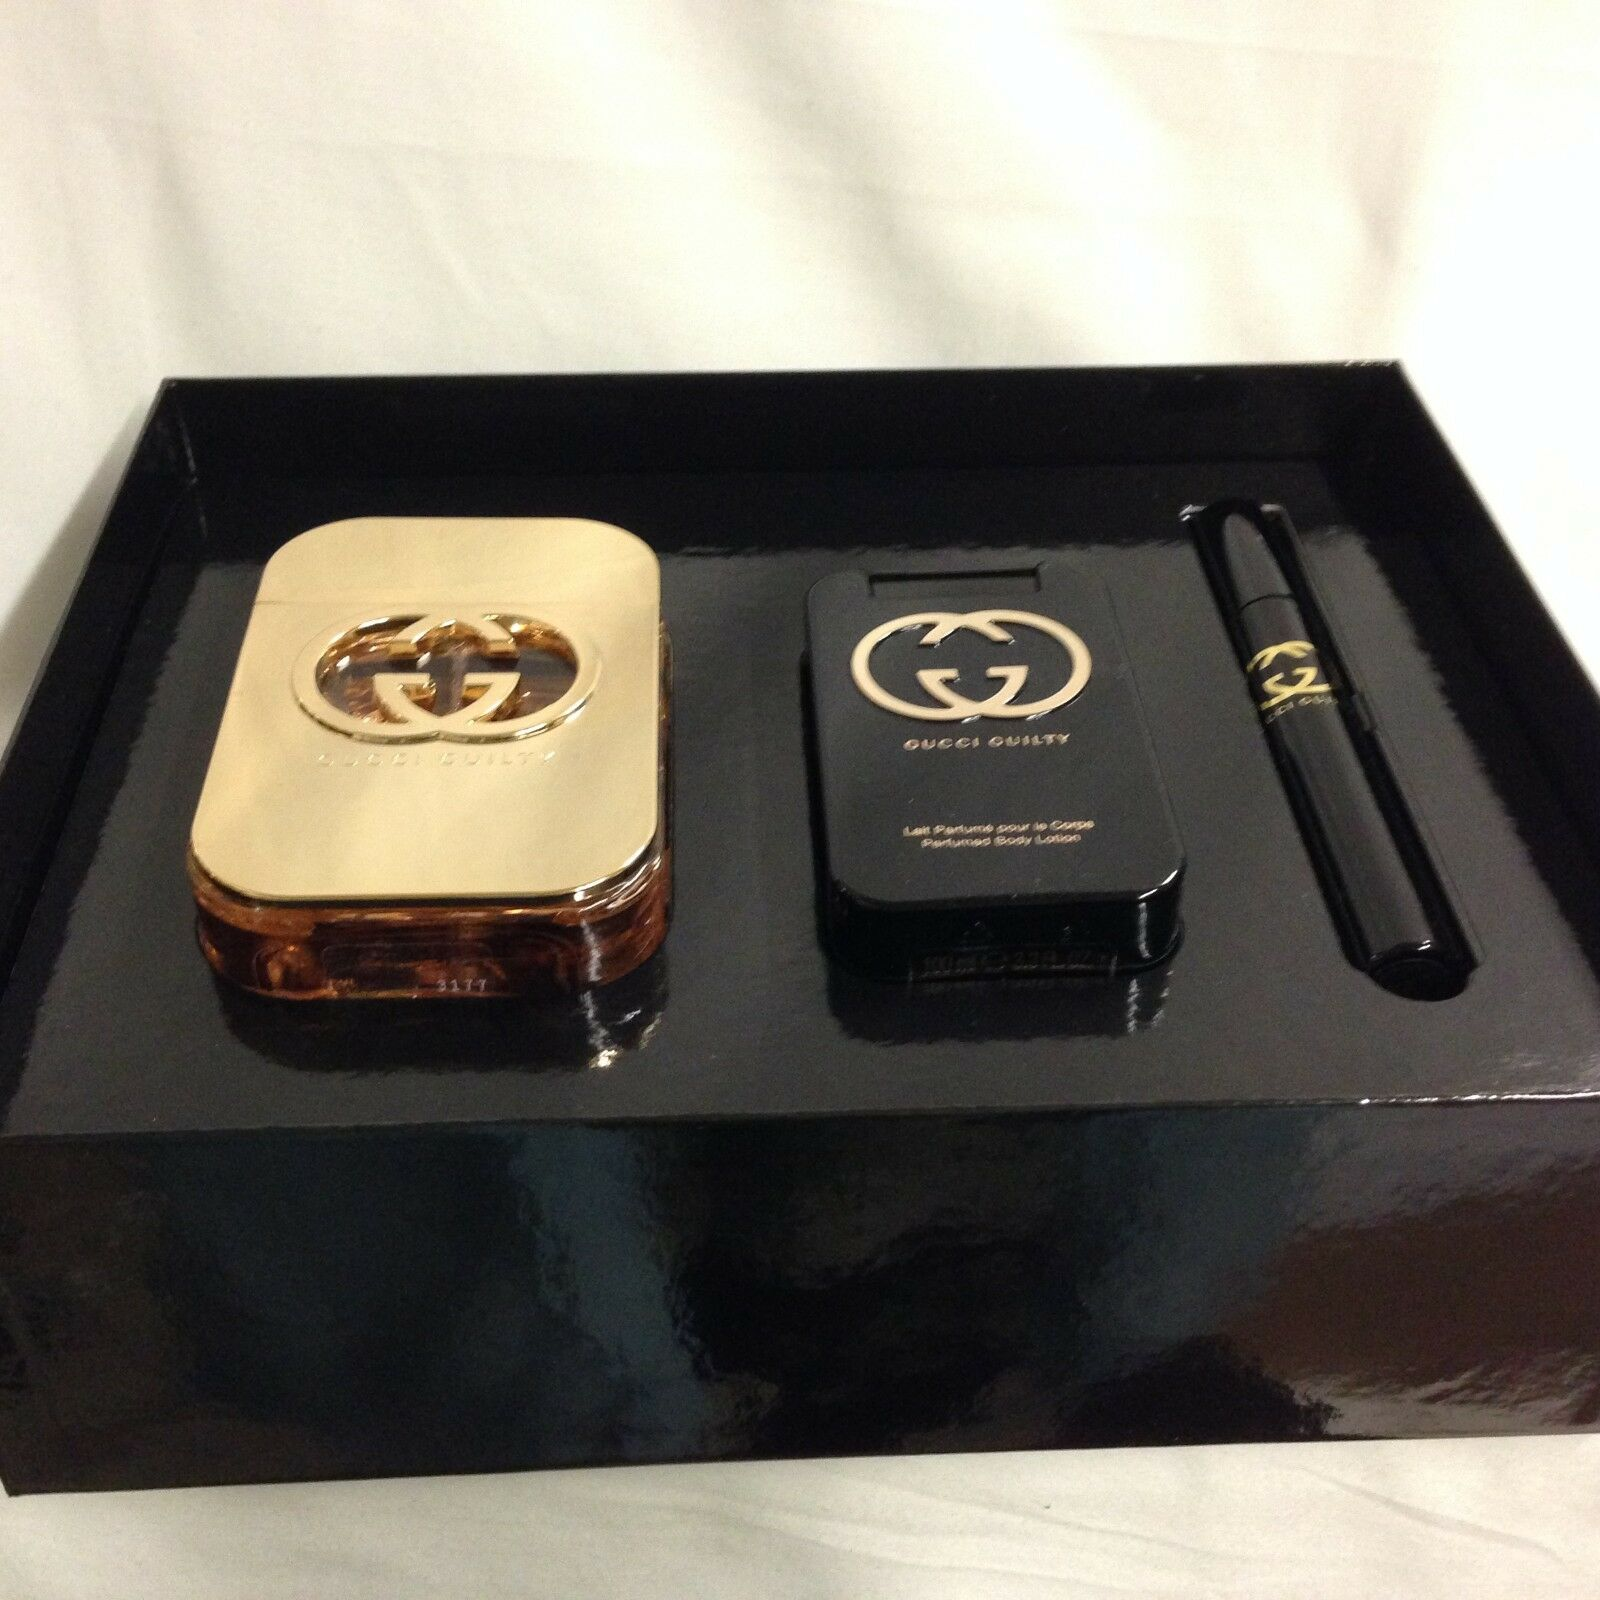 278a986bbc Details about GUCCI GUILTY By GUCCI Perfume For WOMEN 3PC GIFT SET 2.5 +  LOTION + MINI @ SALE!